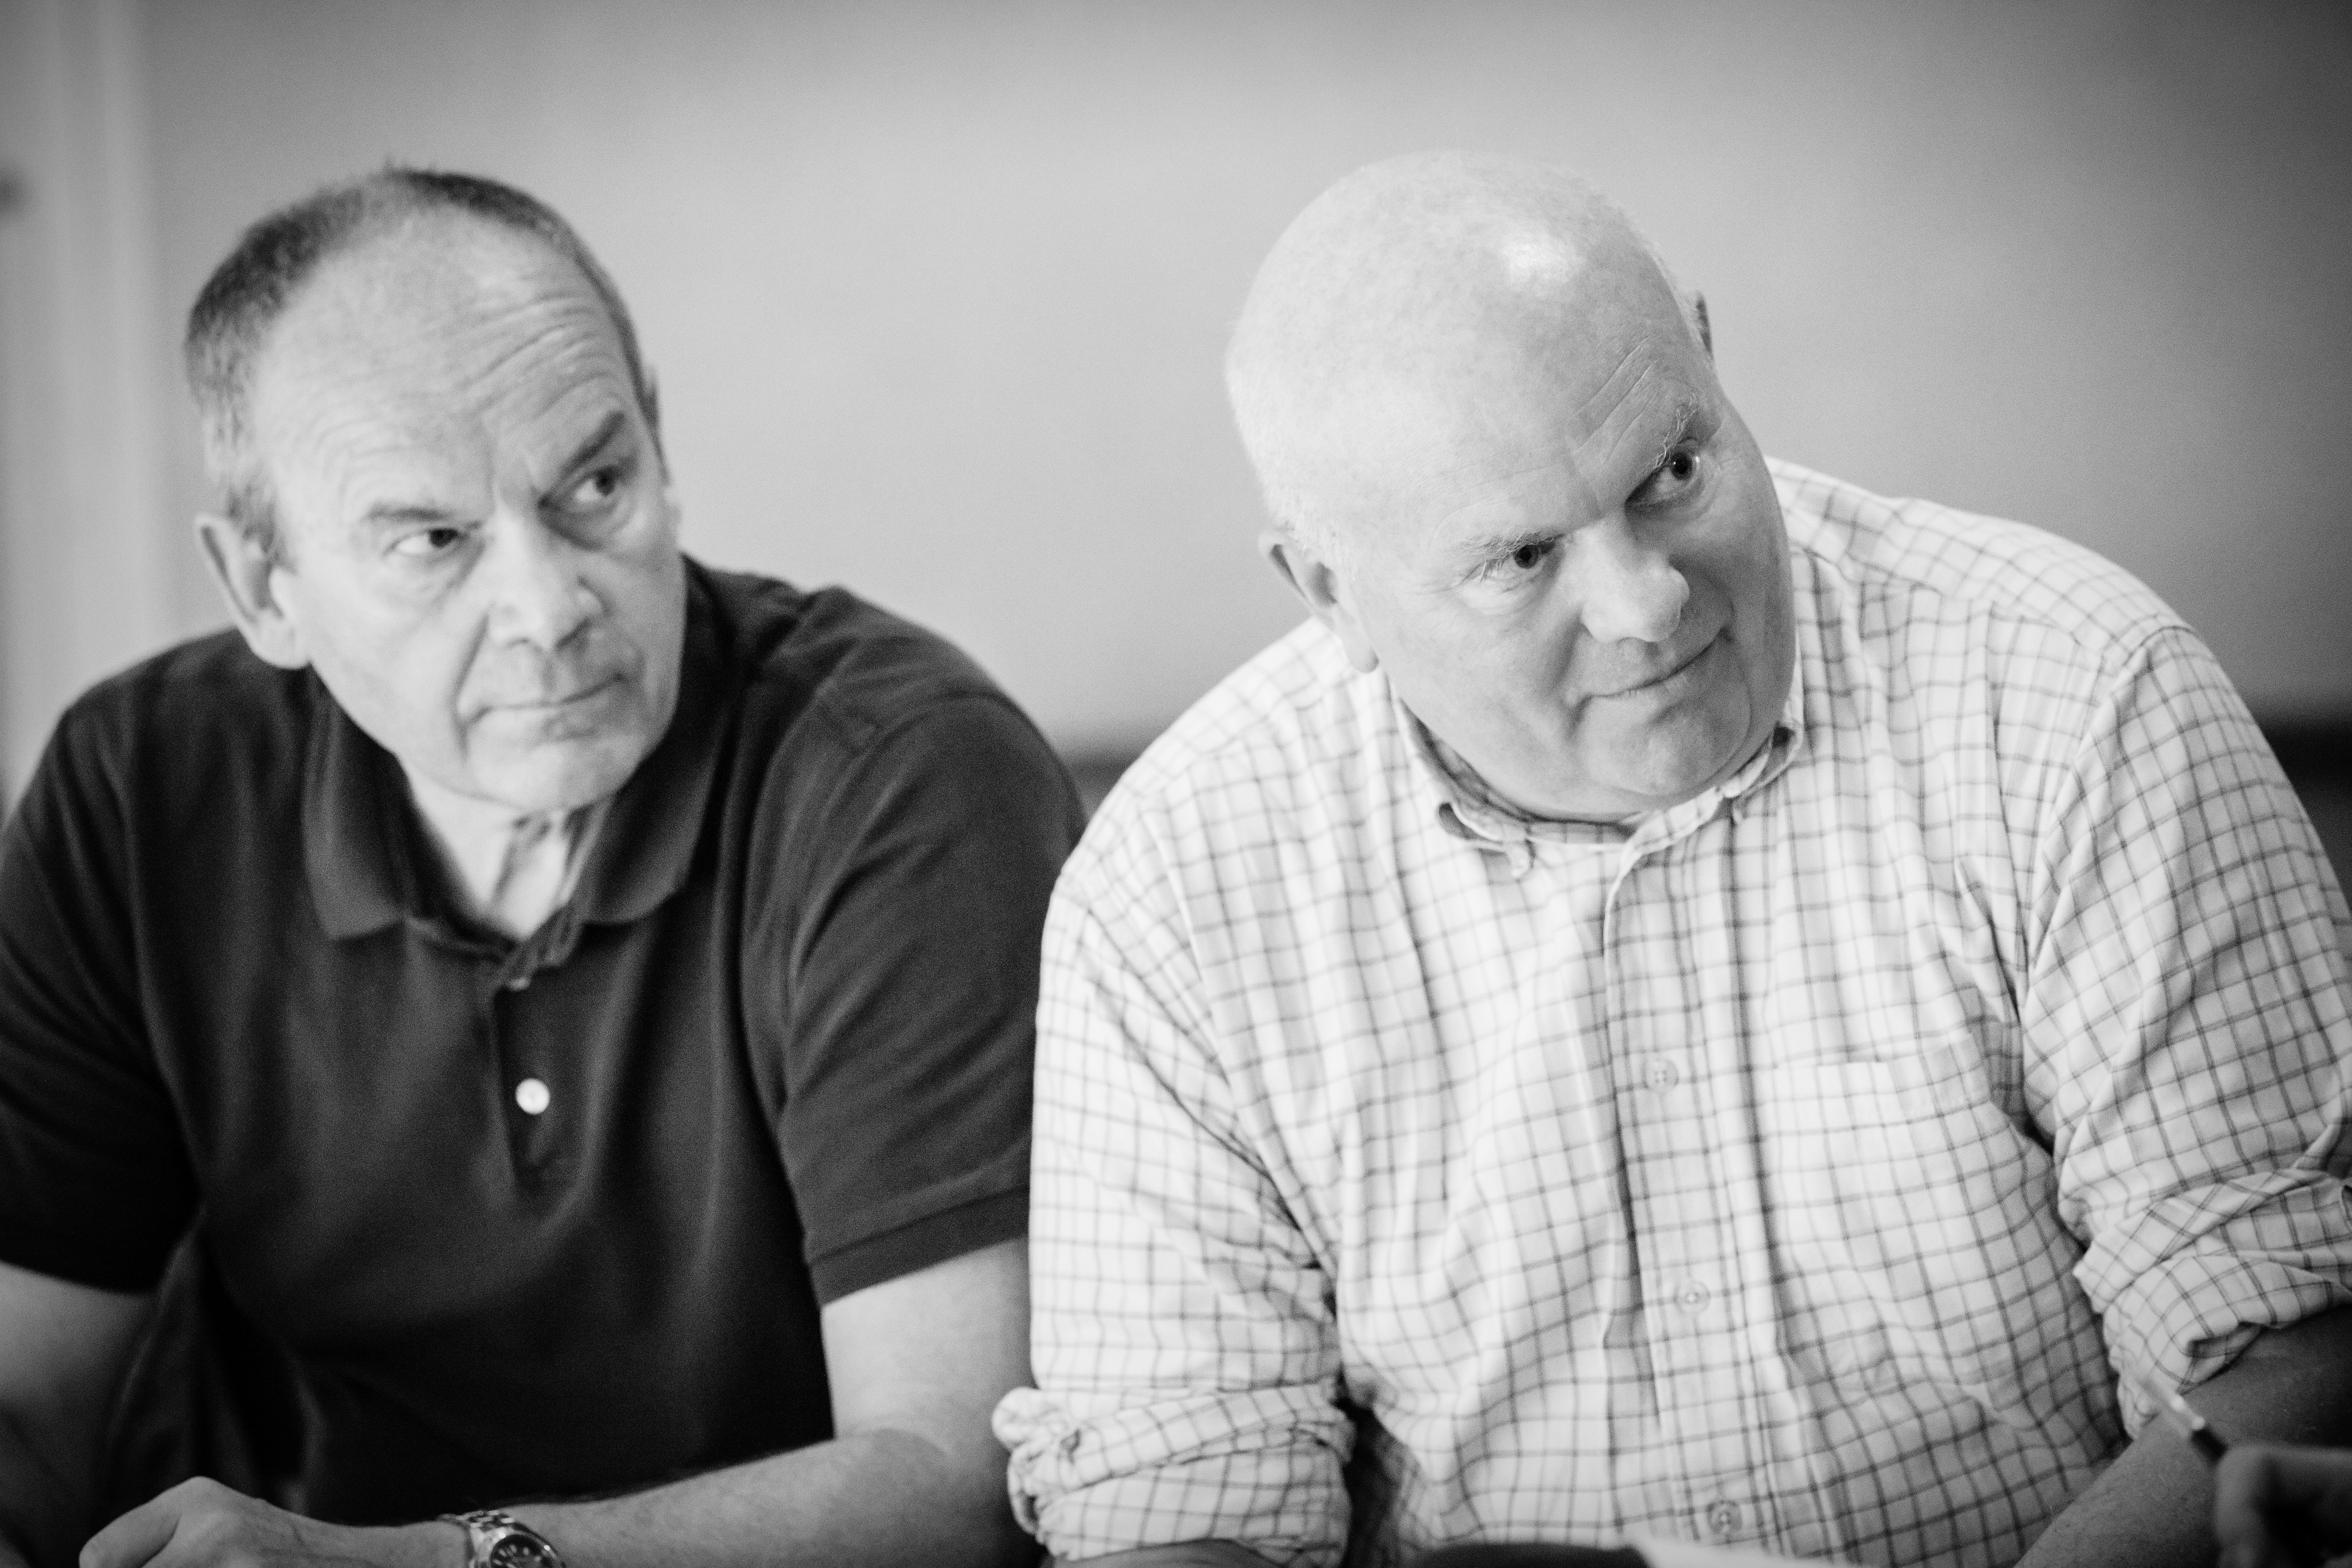 Declan Donnellan and Nick Ormerod